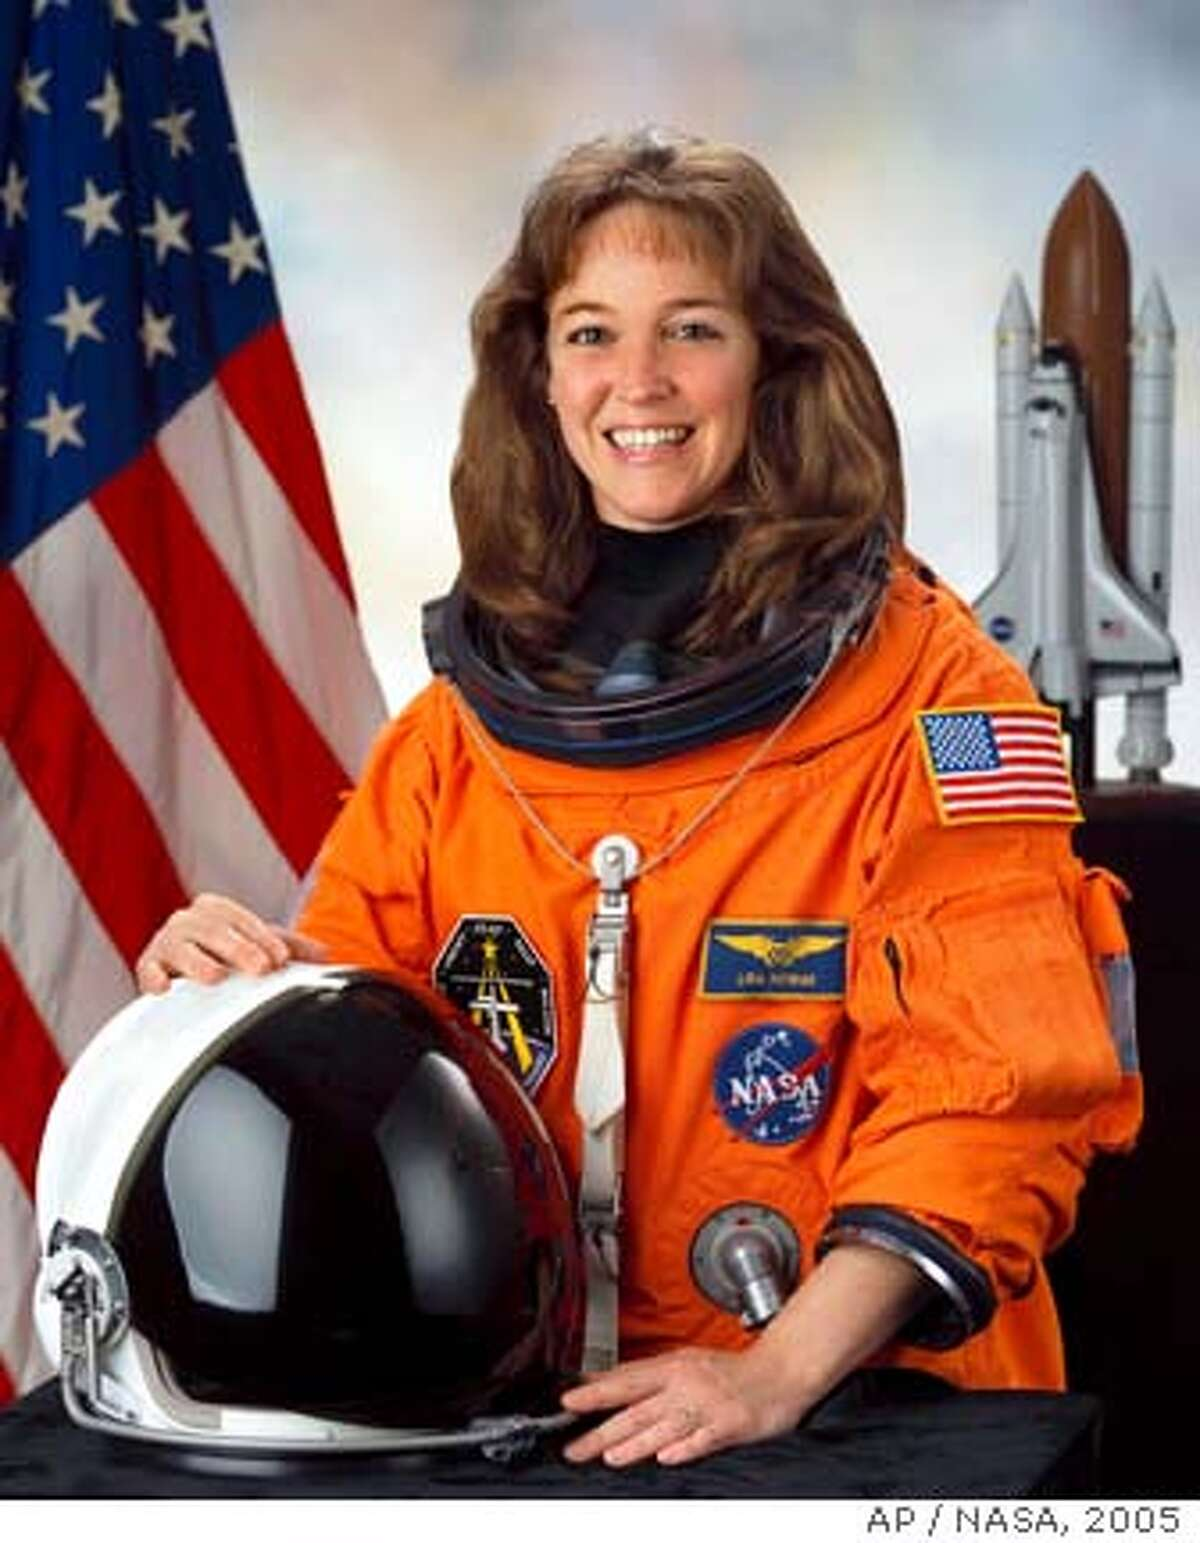 This photo provided by NASA shows astronaut and U.S. Navy Capt. Lisa M. Nowak, March 7, 2005 in Houston. Nowak was arrested Monday Feb. 5, 2007 for attempting to kidnap a woman she believed was romantically involved with another astronaut she was in love with, police said. Nowak, 43, who flew last July on a space shuttle mission to the international space station, was charged with attempted kidnapping, attempted vehicle burglary with battery, destruction of evidence and battery. She was denied bail. (AP Photo/NASA)